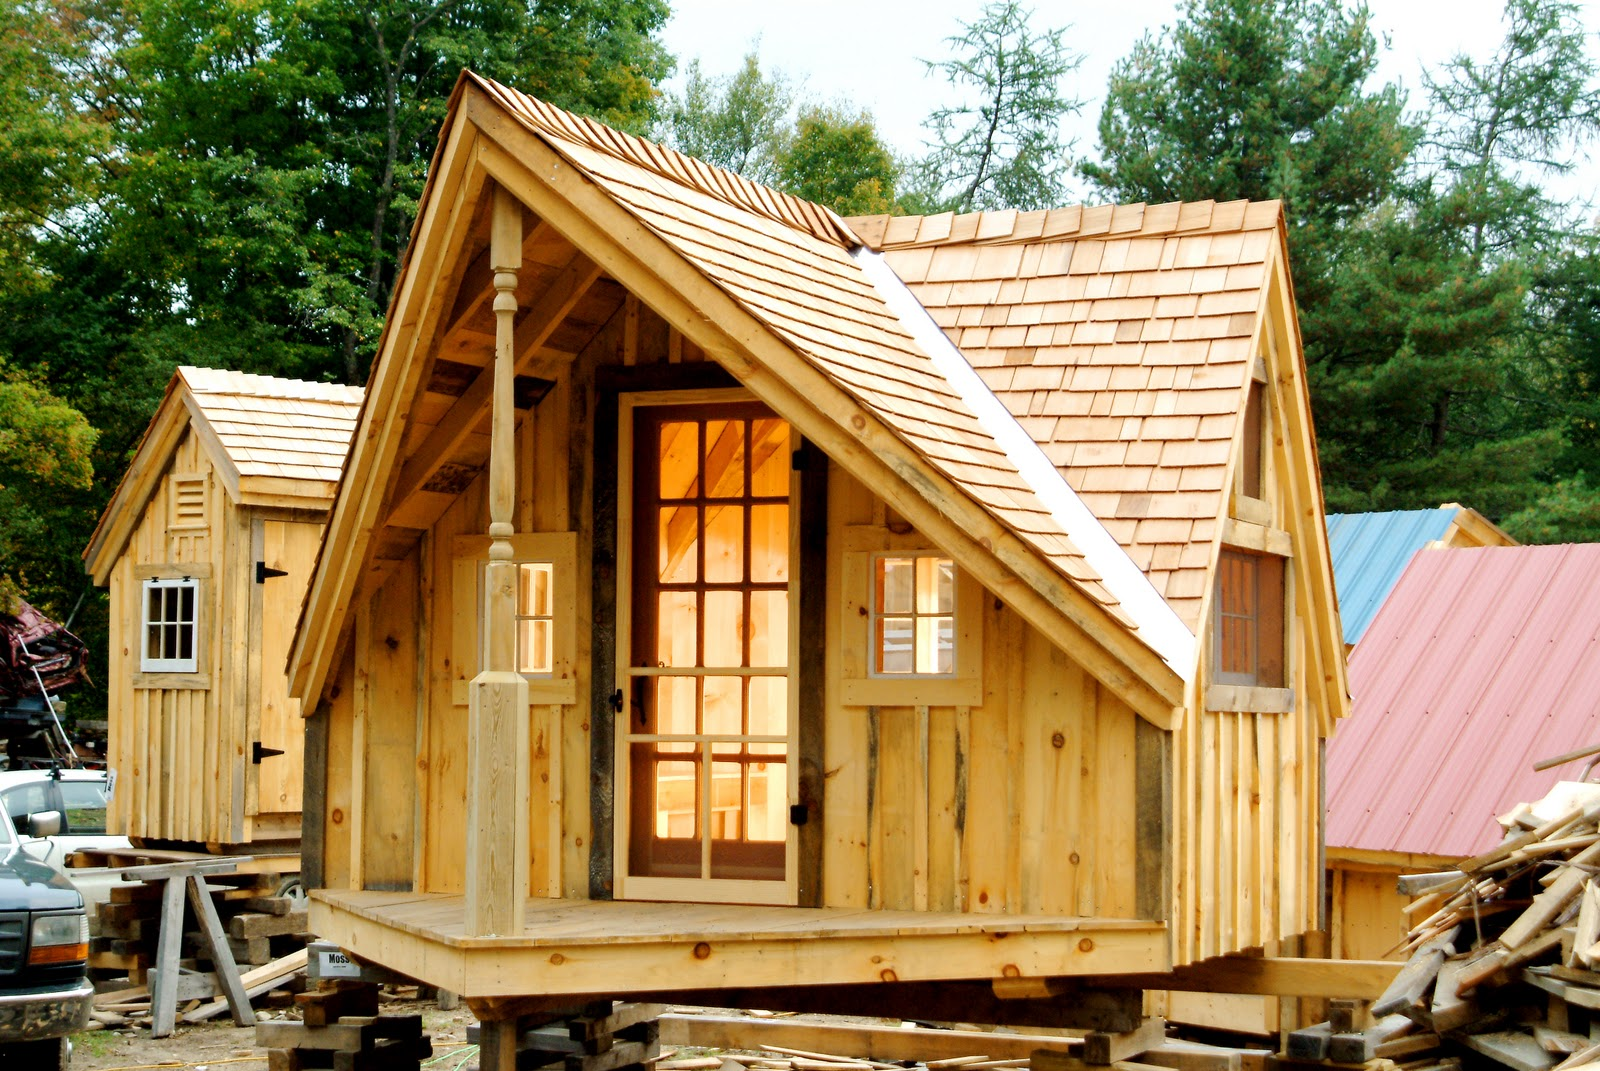 Six free plan sets for tiny houses cabins shedworking offices - Small homes design ideas ...